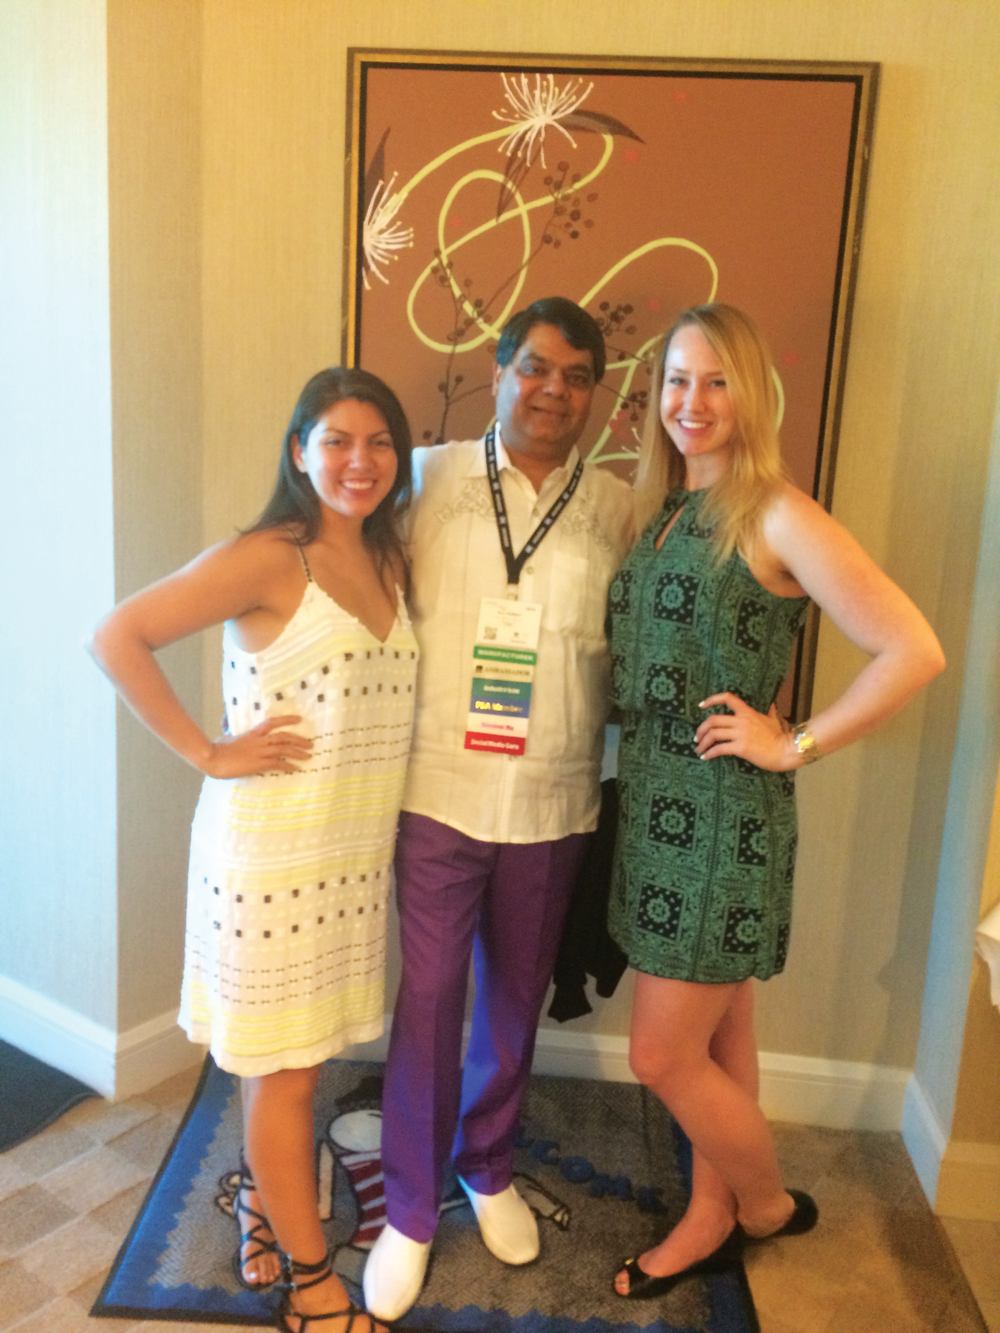 <p>NAILS' Beth Livesay (left) and Shannon Rahn (right) stopped by American Dawn's suite party to chat with Ron Kathari.</p>